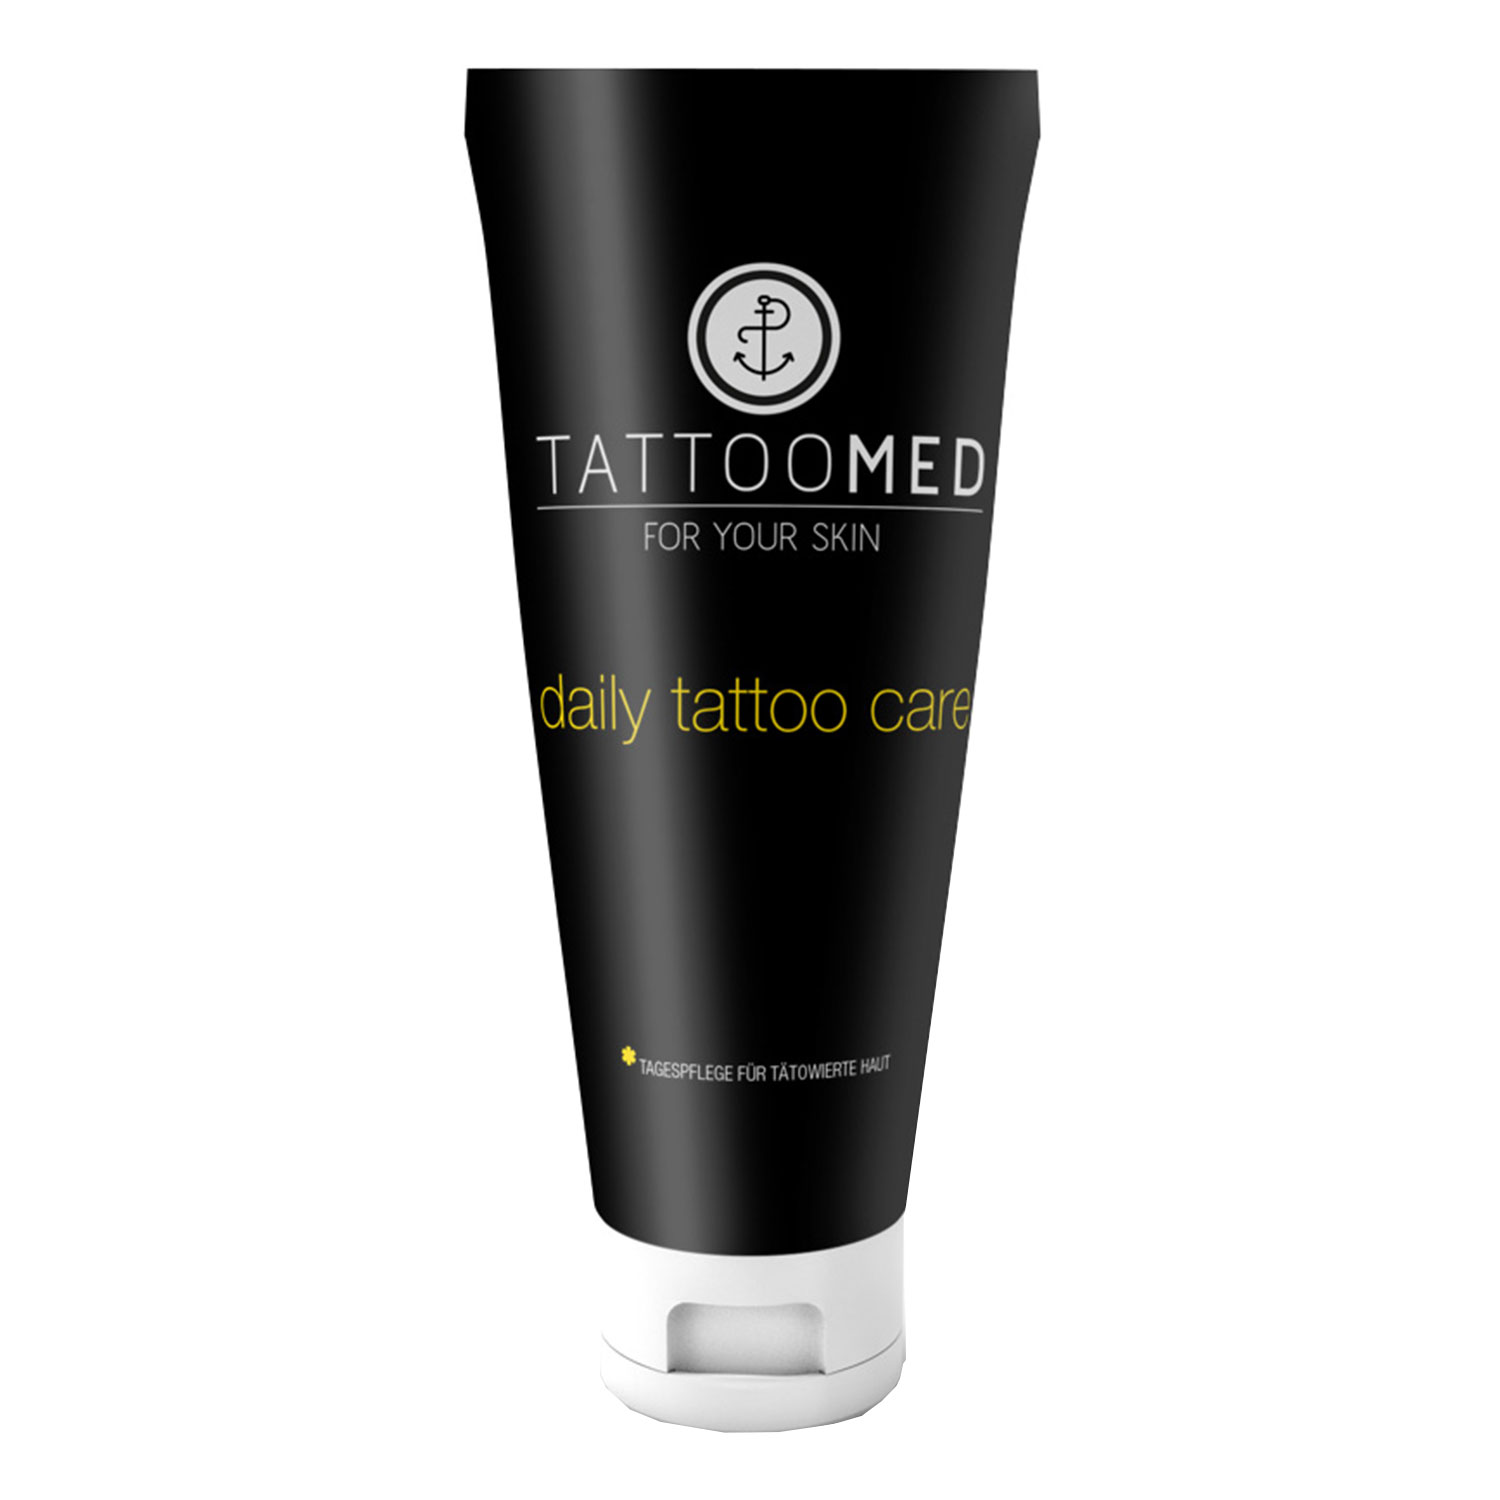 TattooMed Care – Daily Tattoo Care